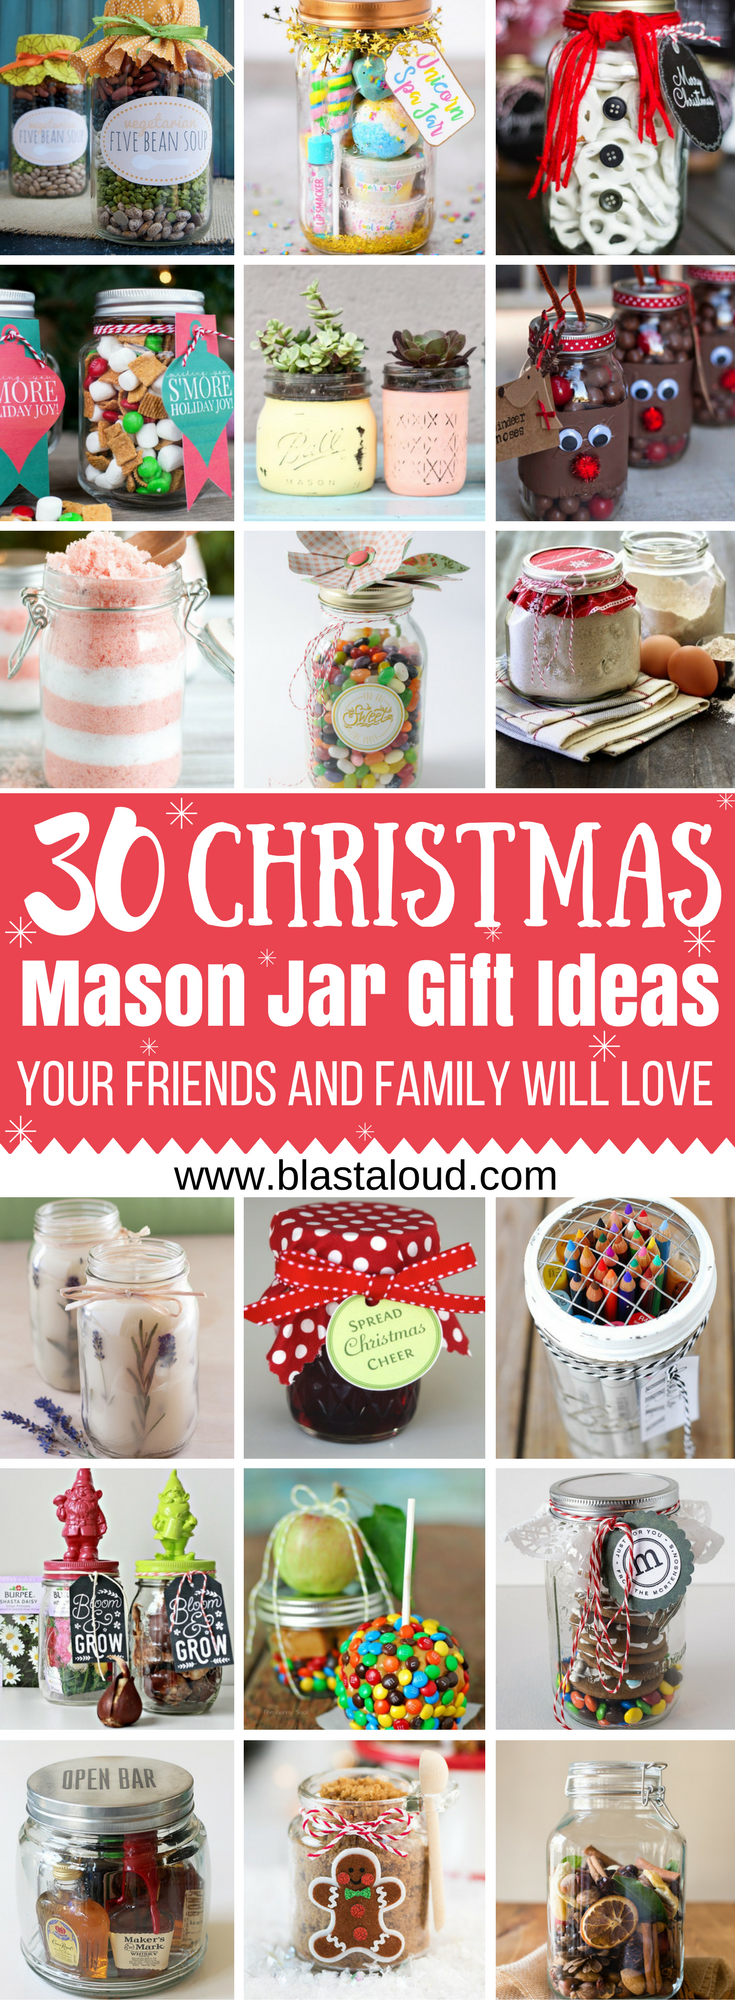 30 Mason Jar Gift Ideas For Christmas That People Will Actually Love ...